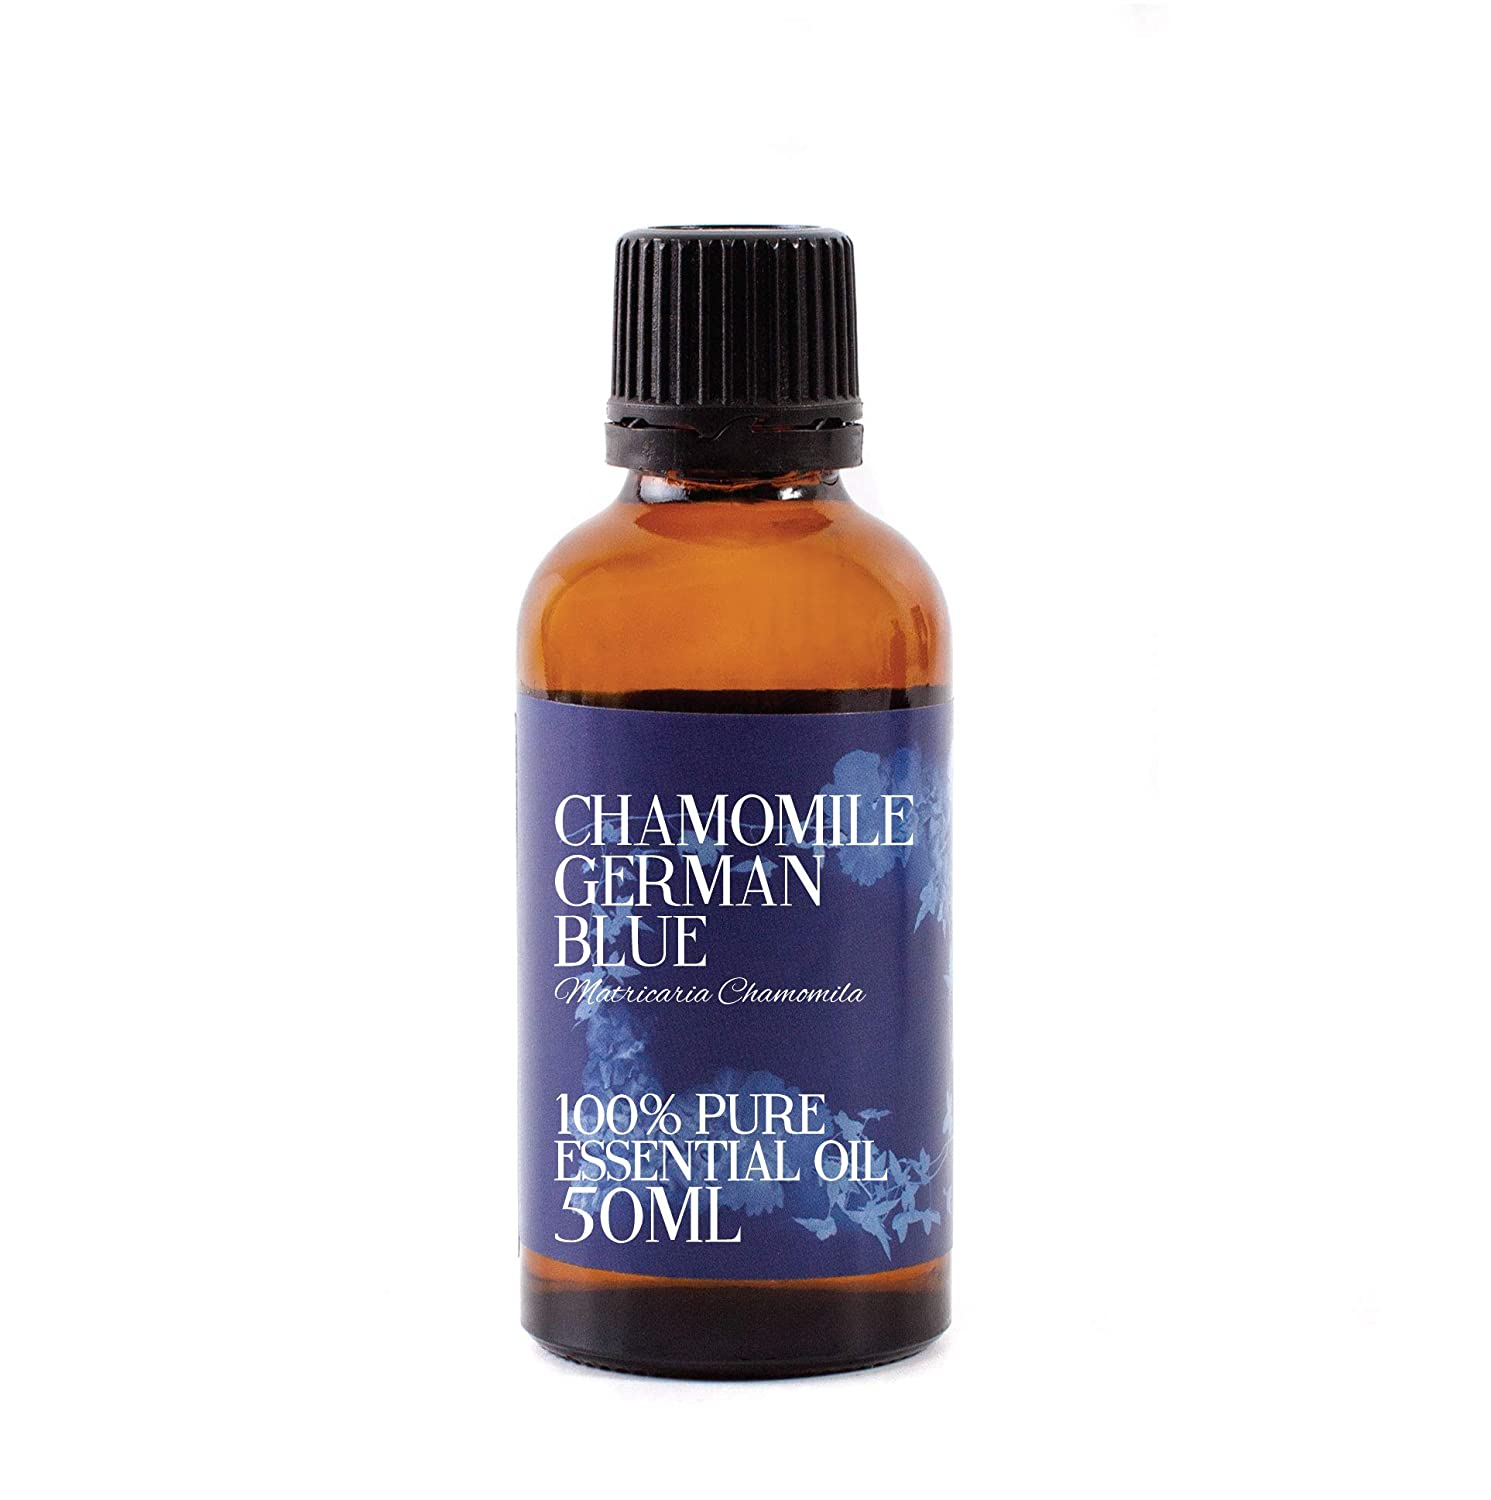 Chamomile German Blue Essential Oil - 50ml - 100% Pure Mystic Moments EOCHAMGERMH50